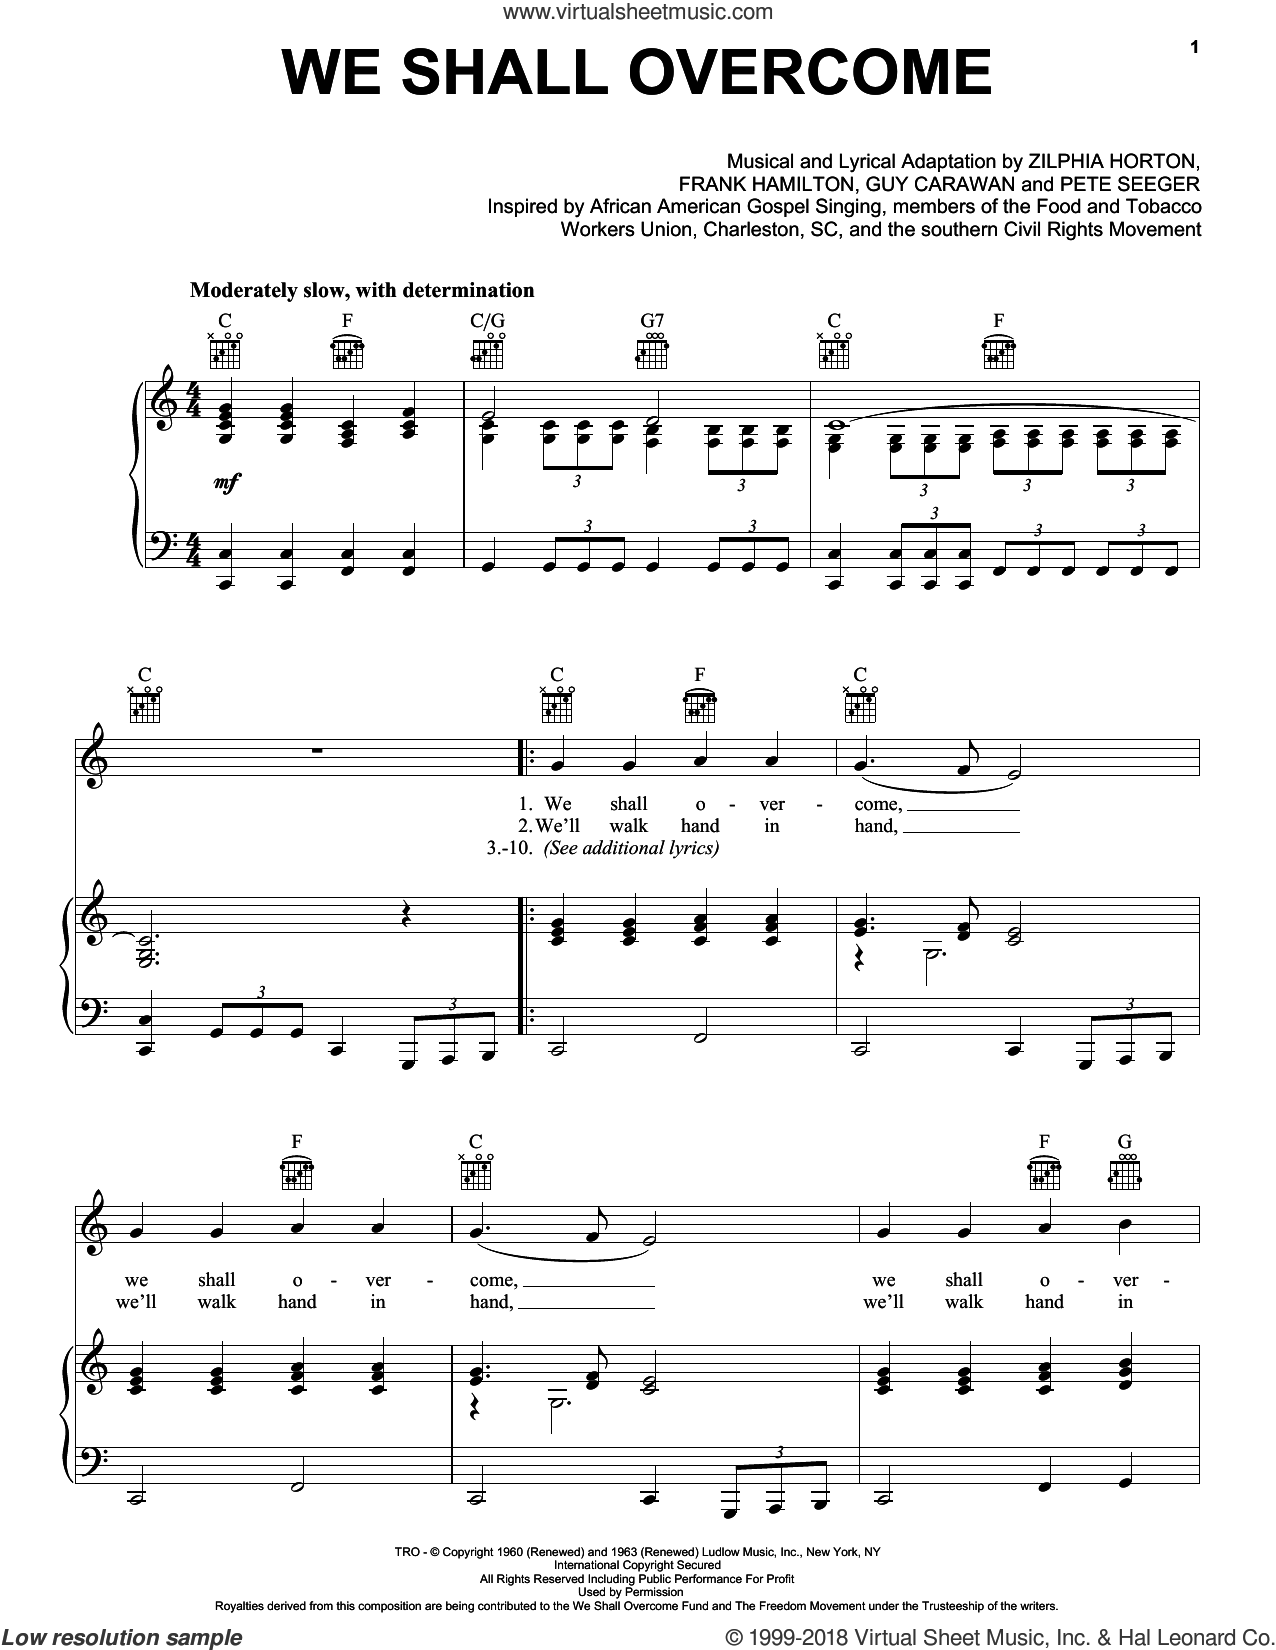 We Shall Overcome sheet music for voice, piano or guitar by Guy Carawan